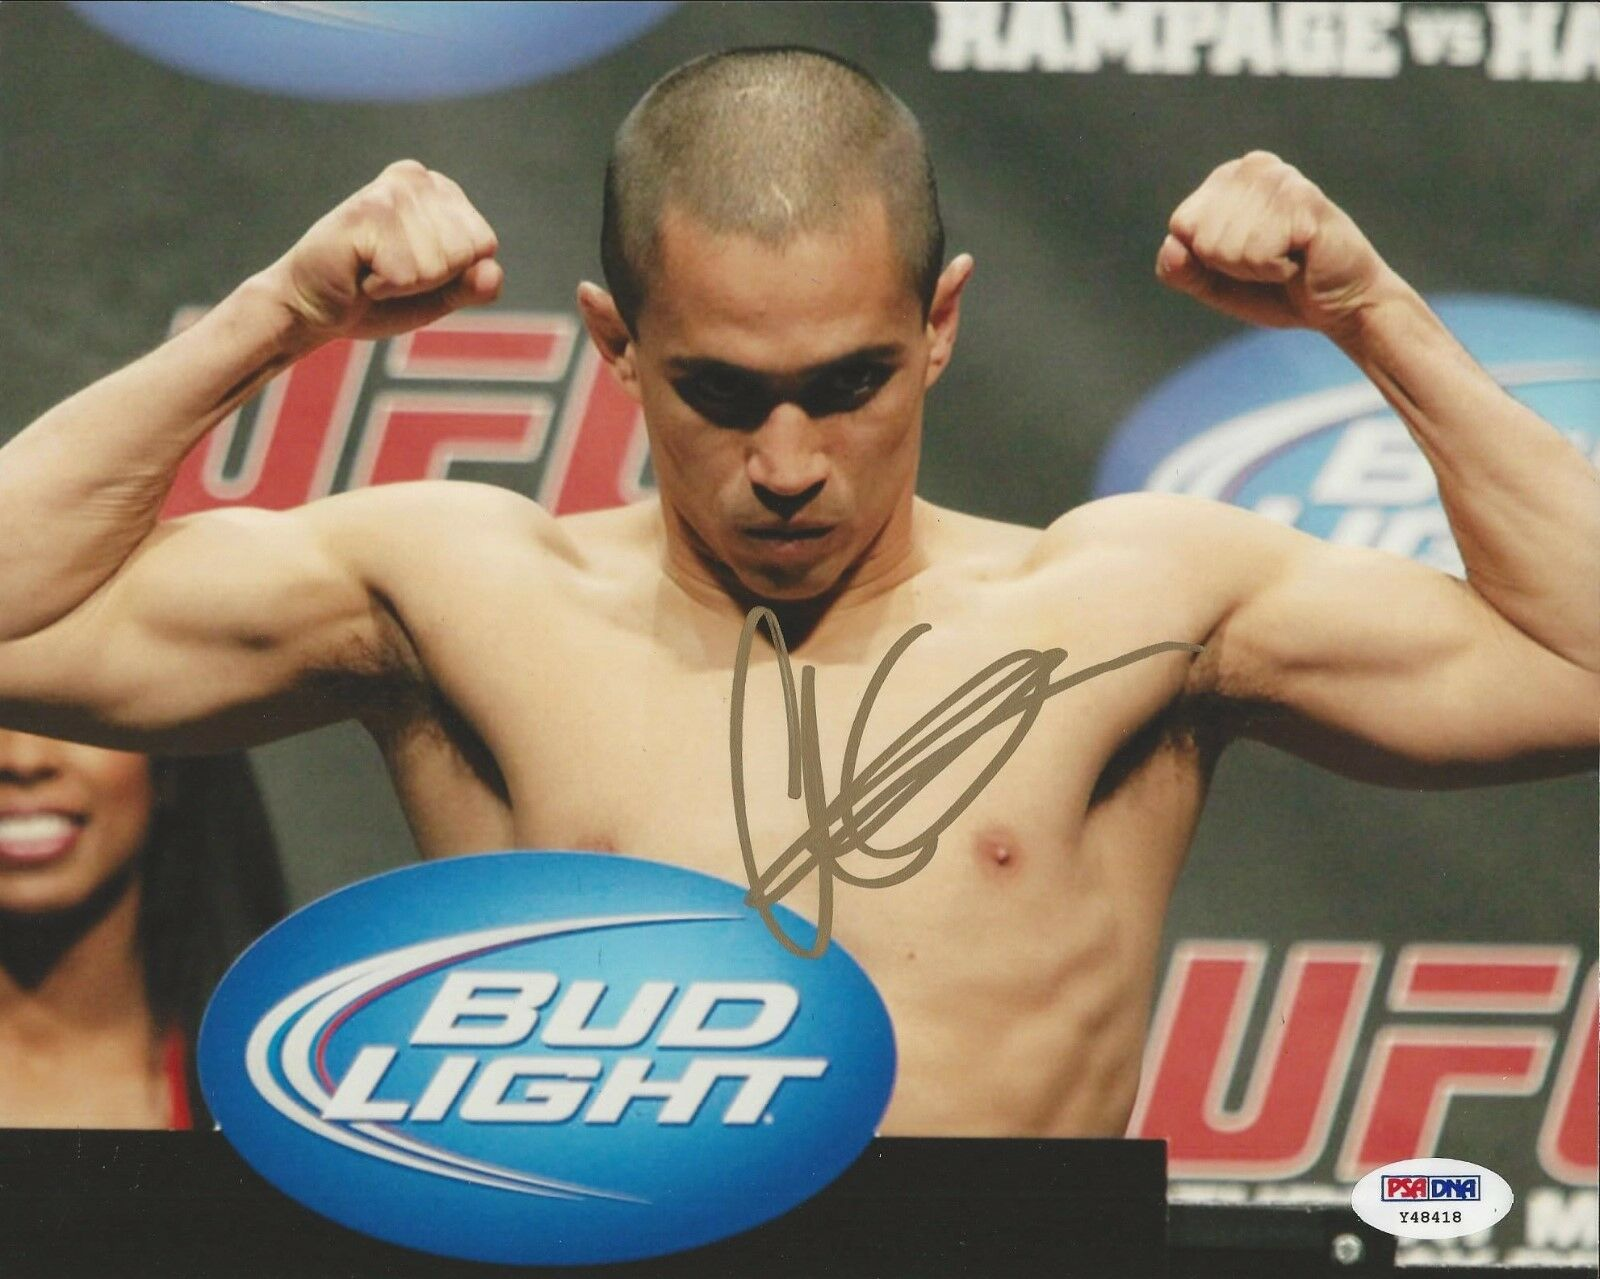 Chris Cariaso UFC Fighter signed 8x10 photo PSA/DNA # Y48418